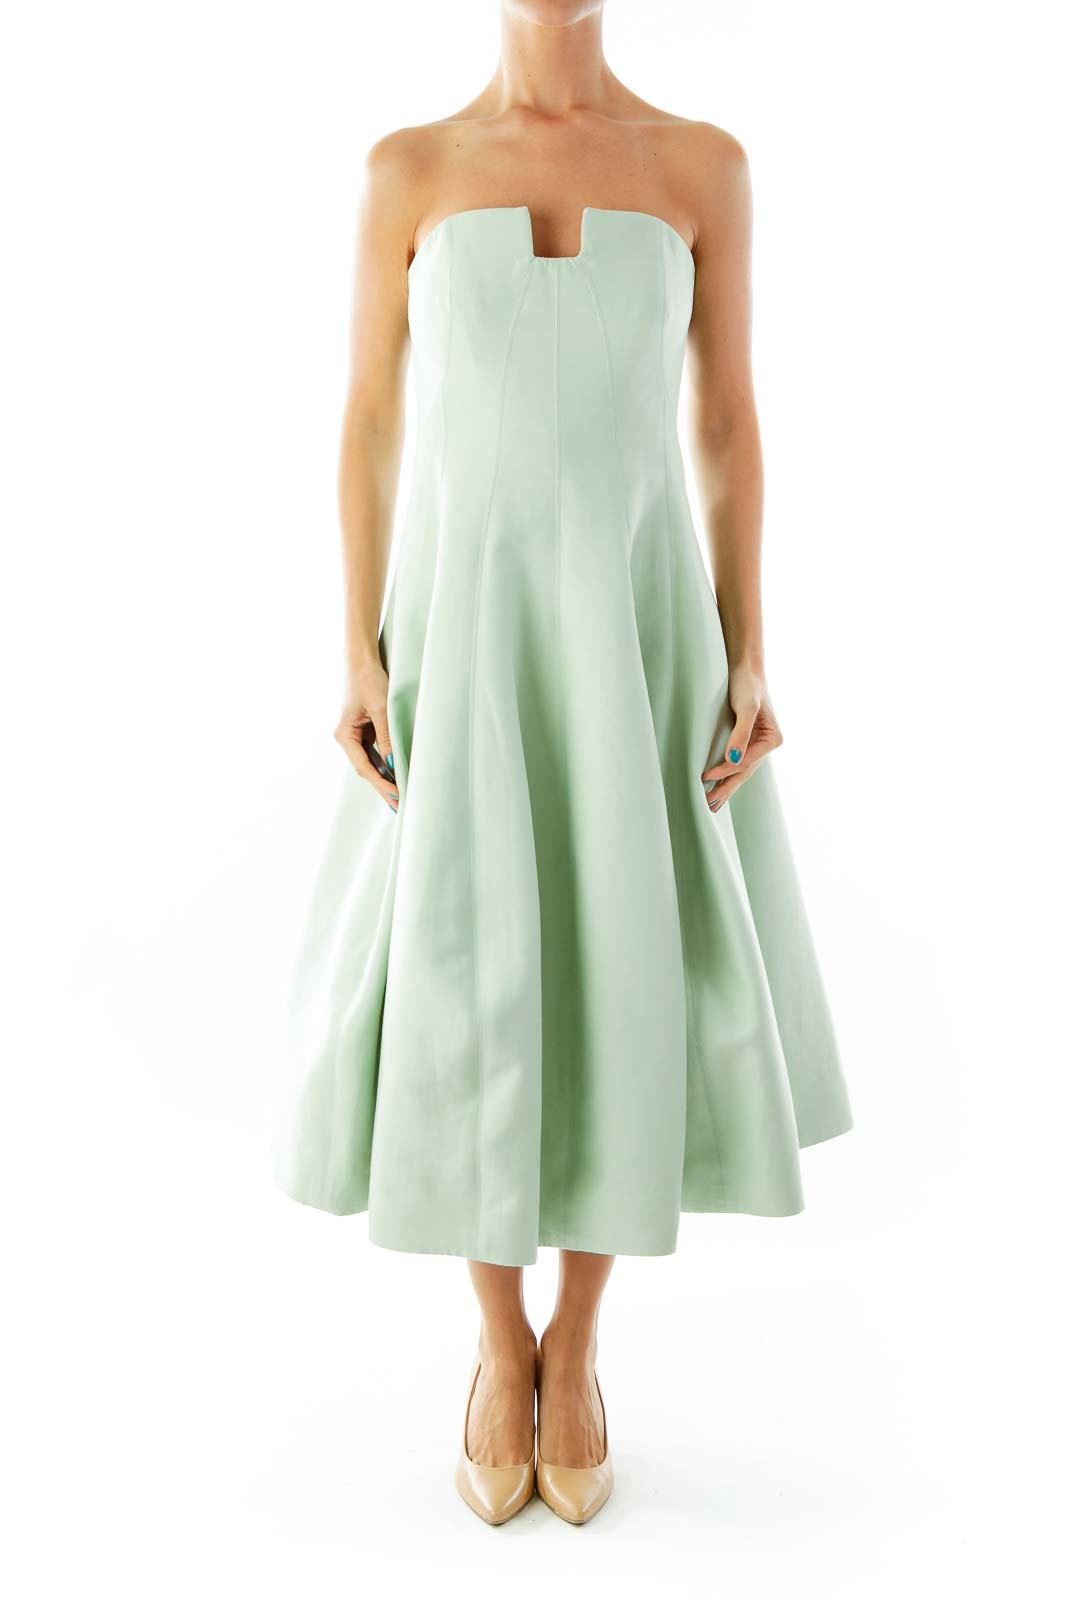 Shop Sea Green Strapless Evening Dress clothing and handbags at ... e4596dee046f0